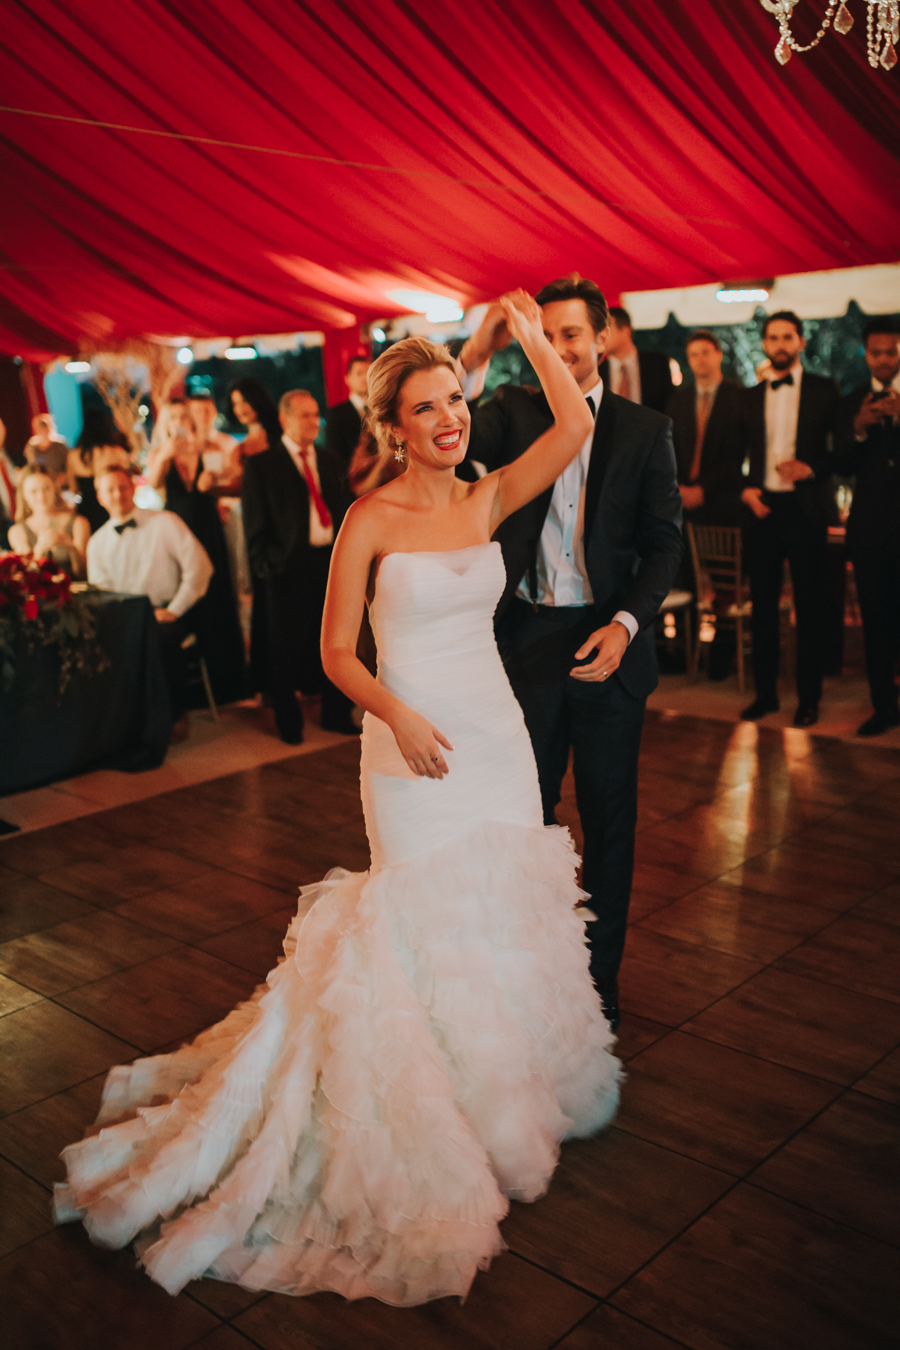 Loren and Alex Kuznetsov Gold and Burgundy wedding at Epicurean Tampa Royal Fall Wedding in Tampa Florida Inside Weddings MD Events Tampa-137.jpg